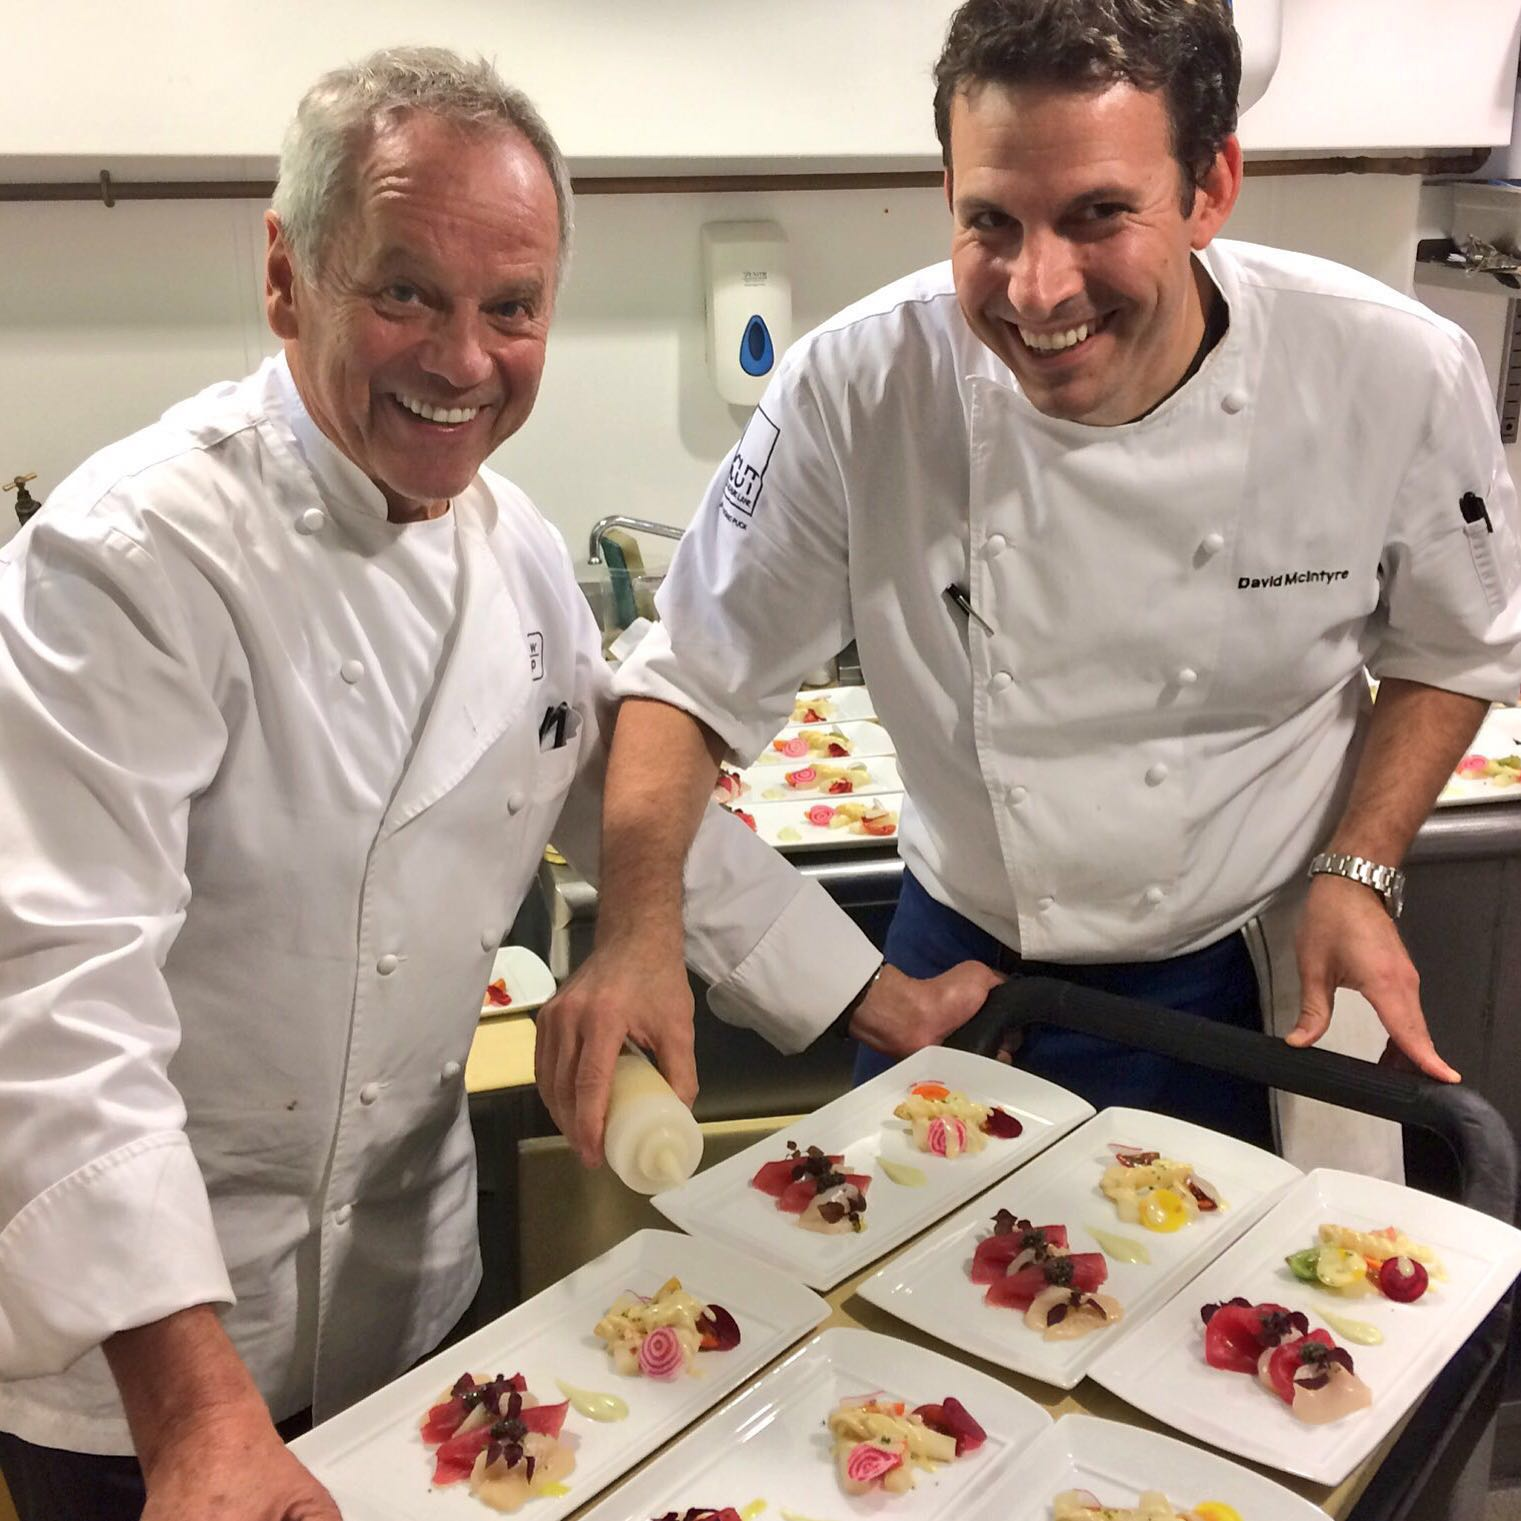 wolfgang-puck-with-david-mcintyre-dinner-event